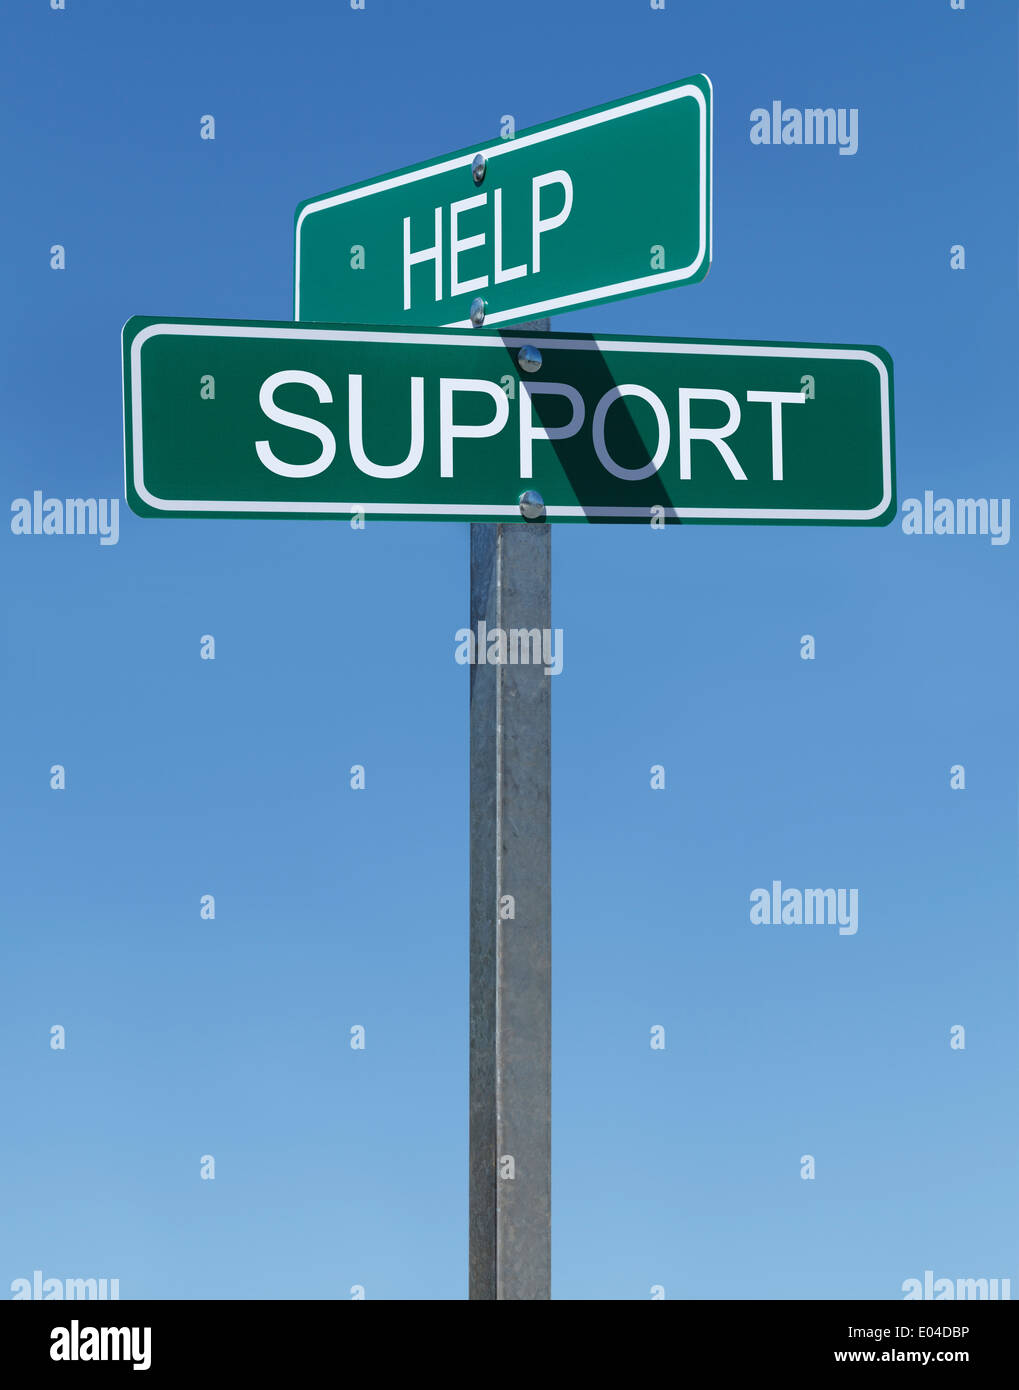 Two Green Street Signs Help and Support on a Metal Pole With Blue Sky Background. - Stock Image